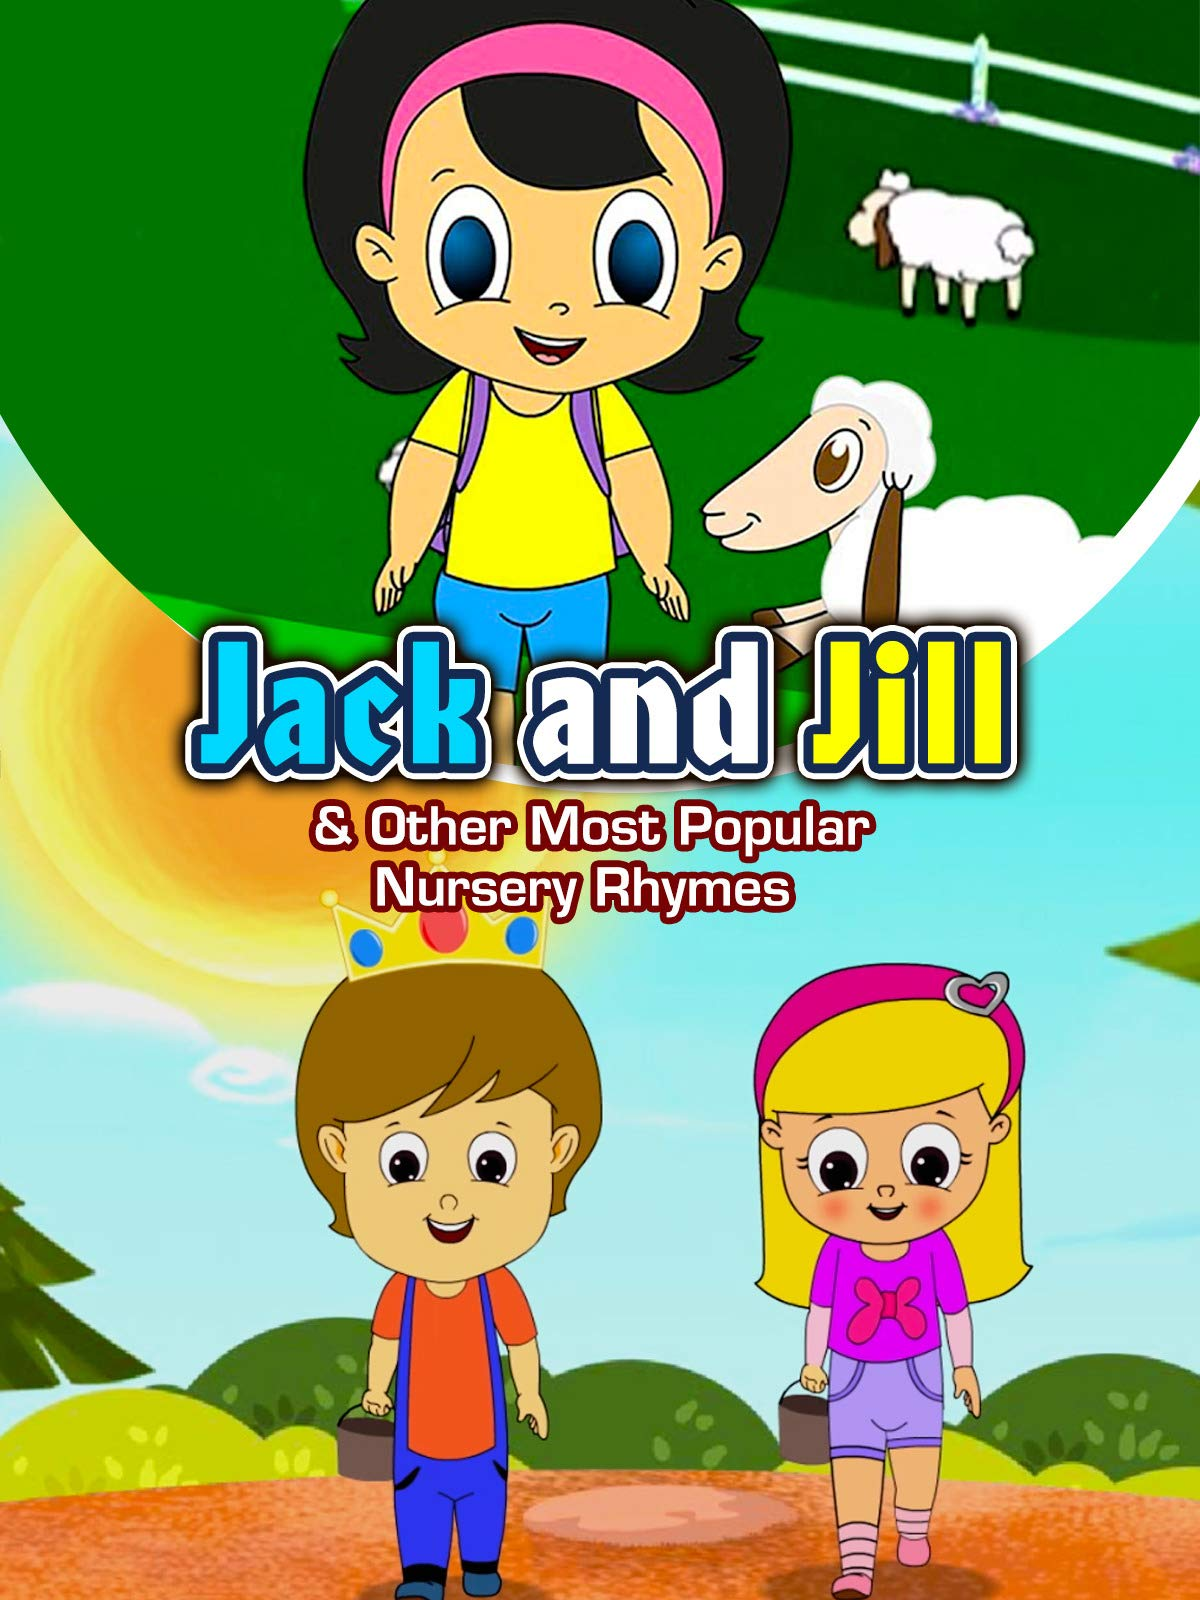 Jack and Jill & Other Most Popular Nursery Rhymes |HD Version